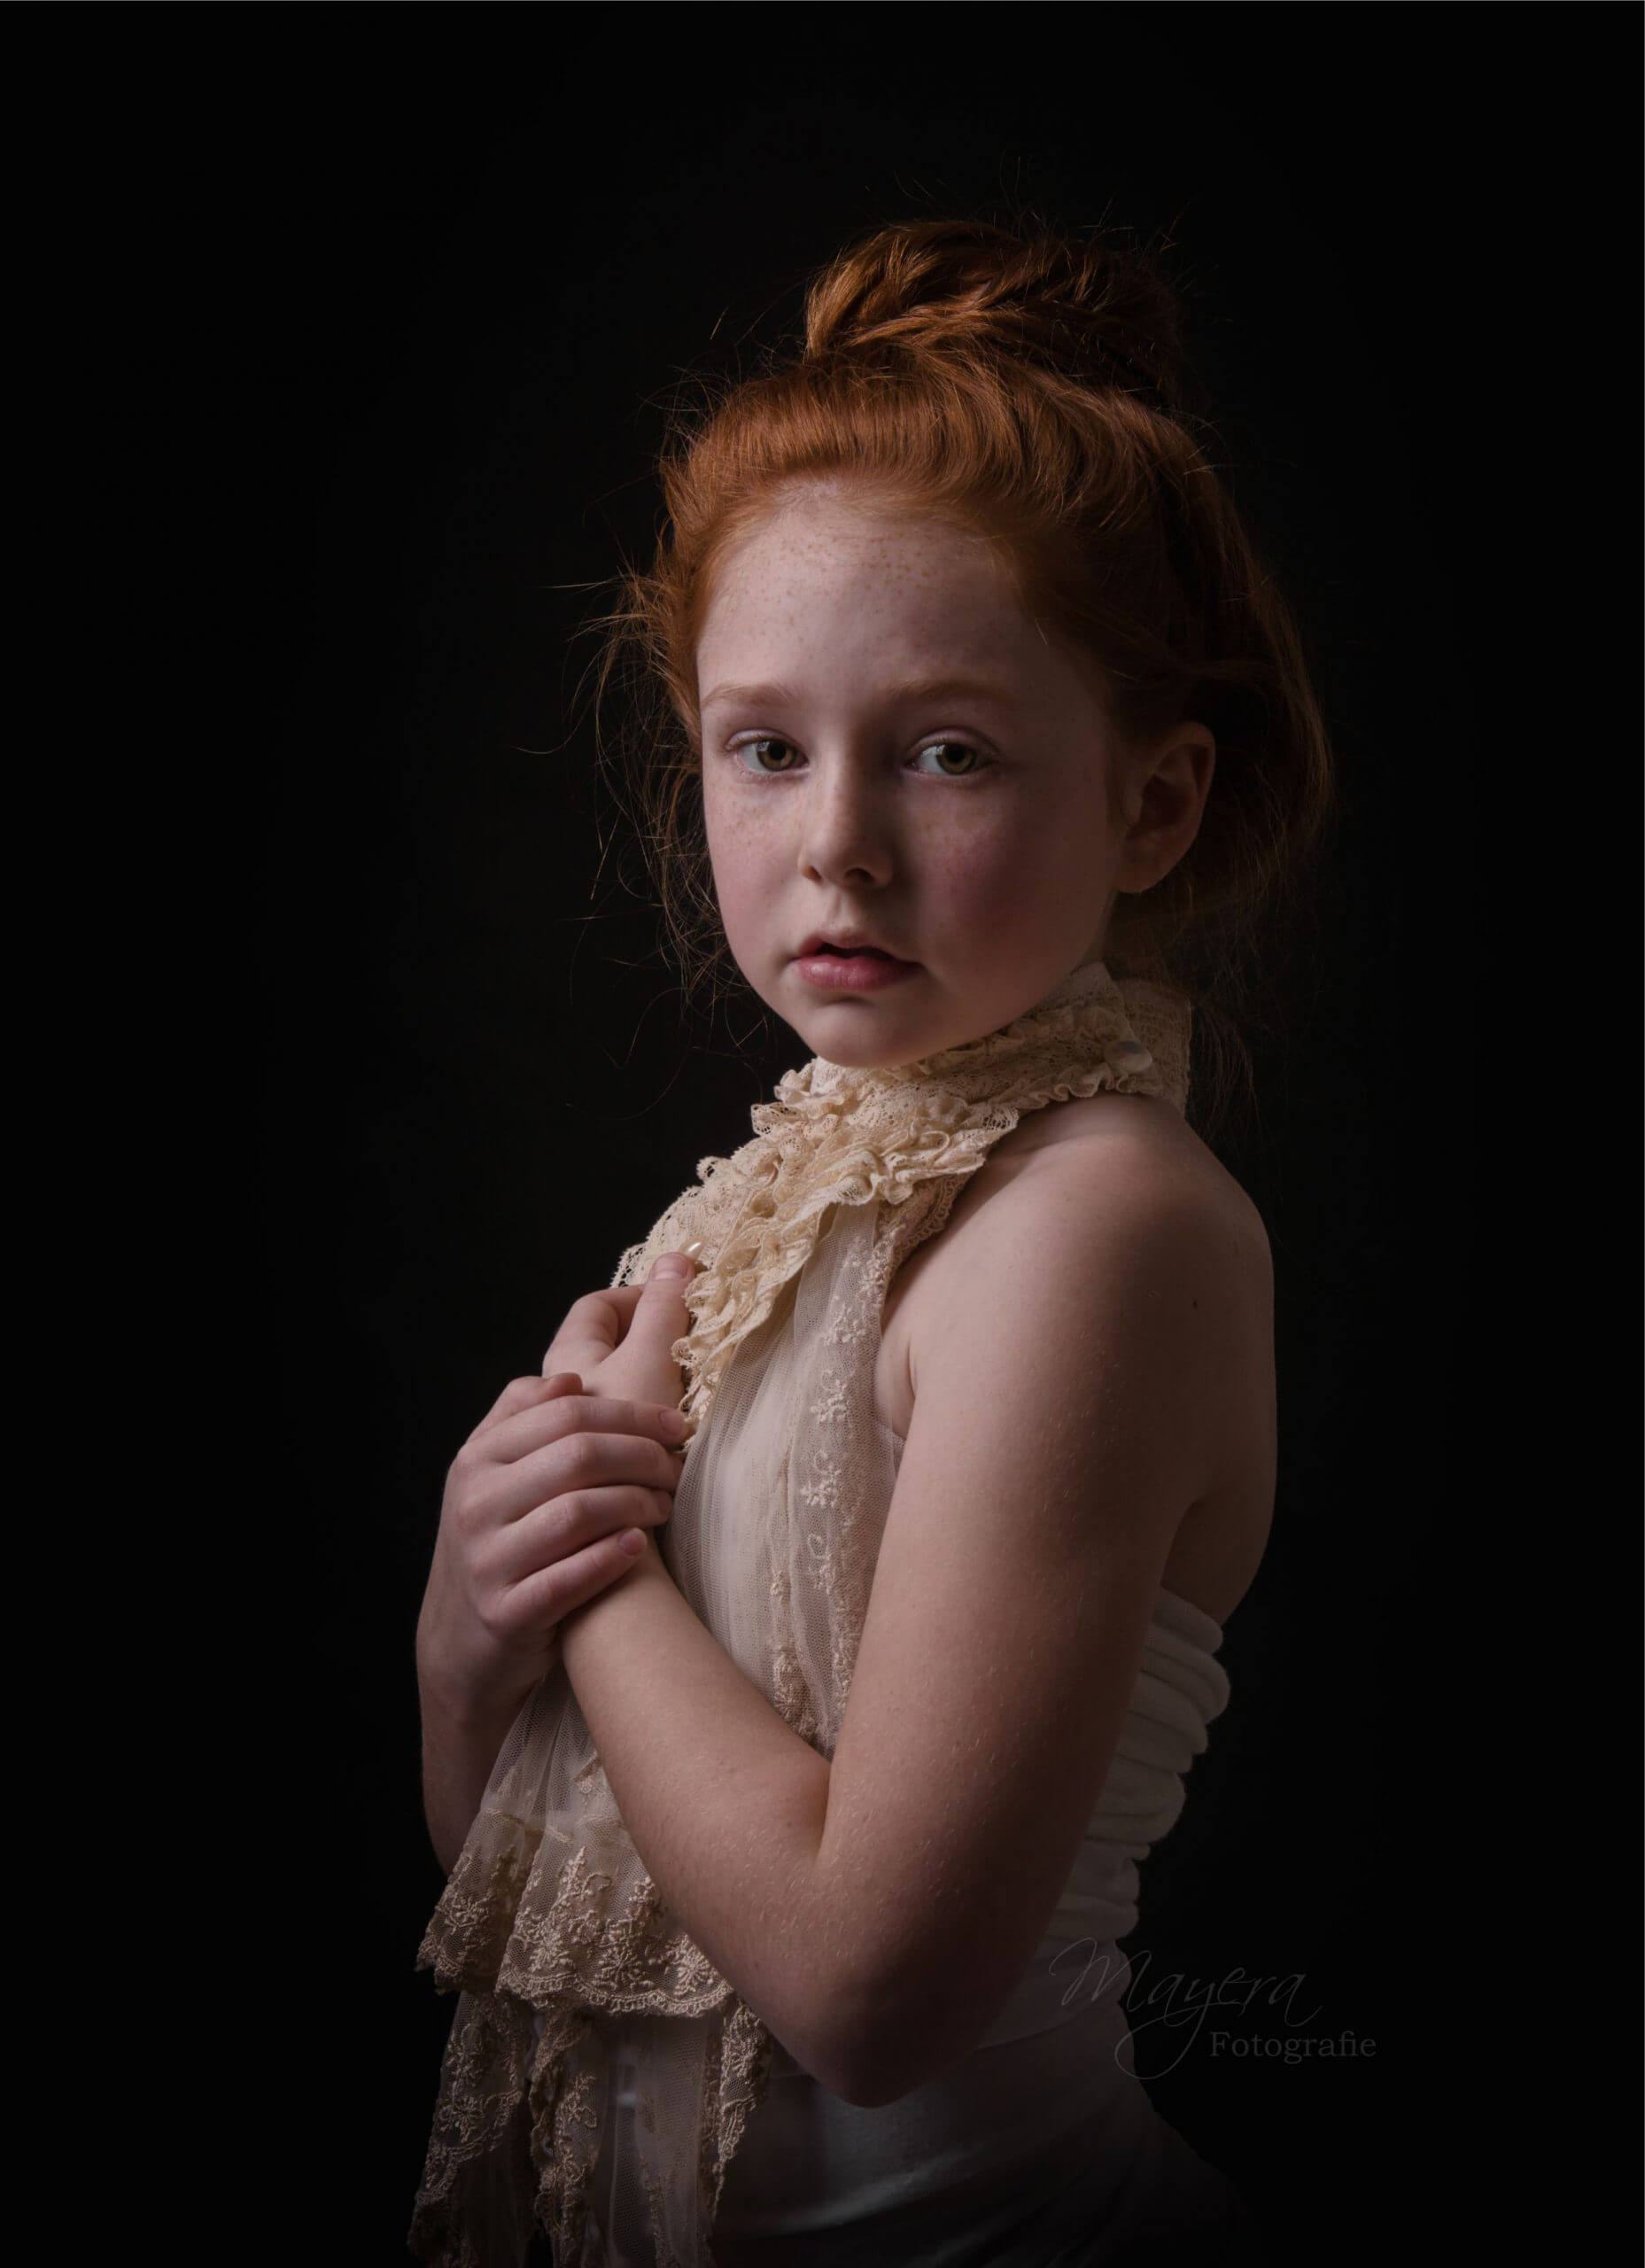 fine-art-portret-meisje-studio-4-scaled